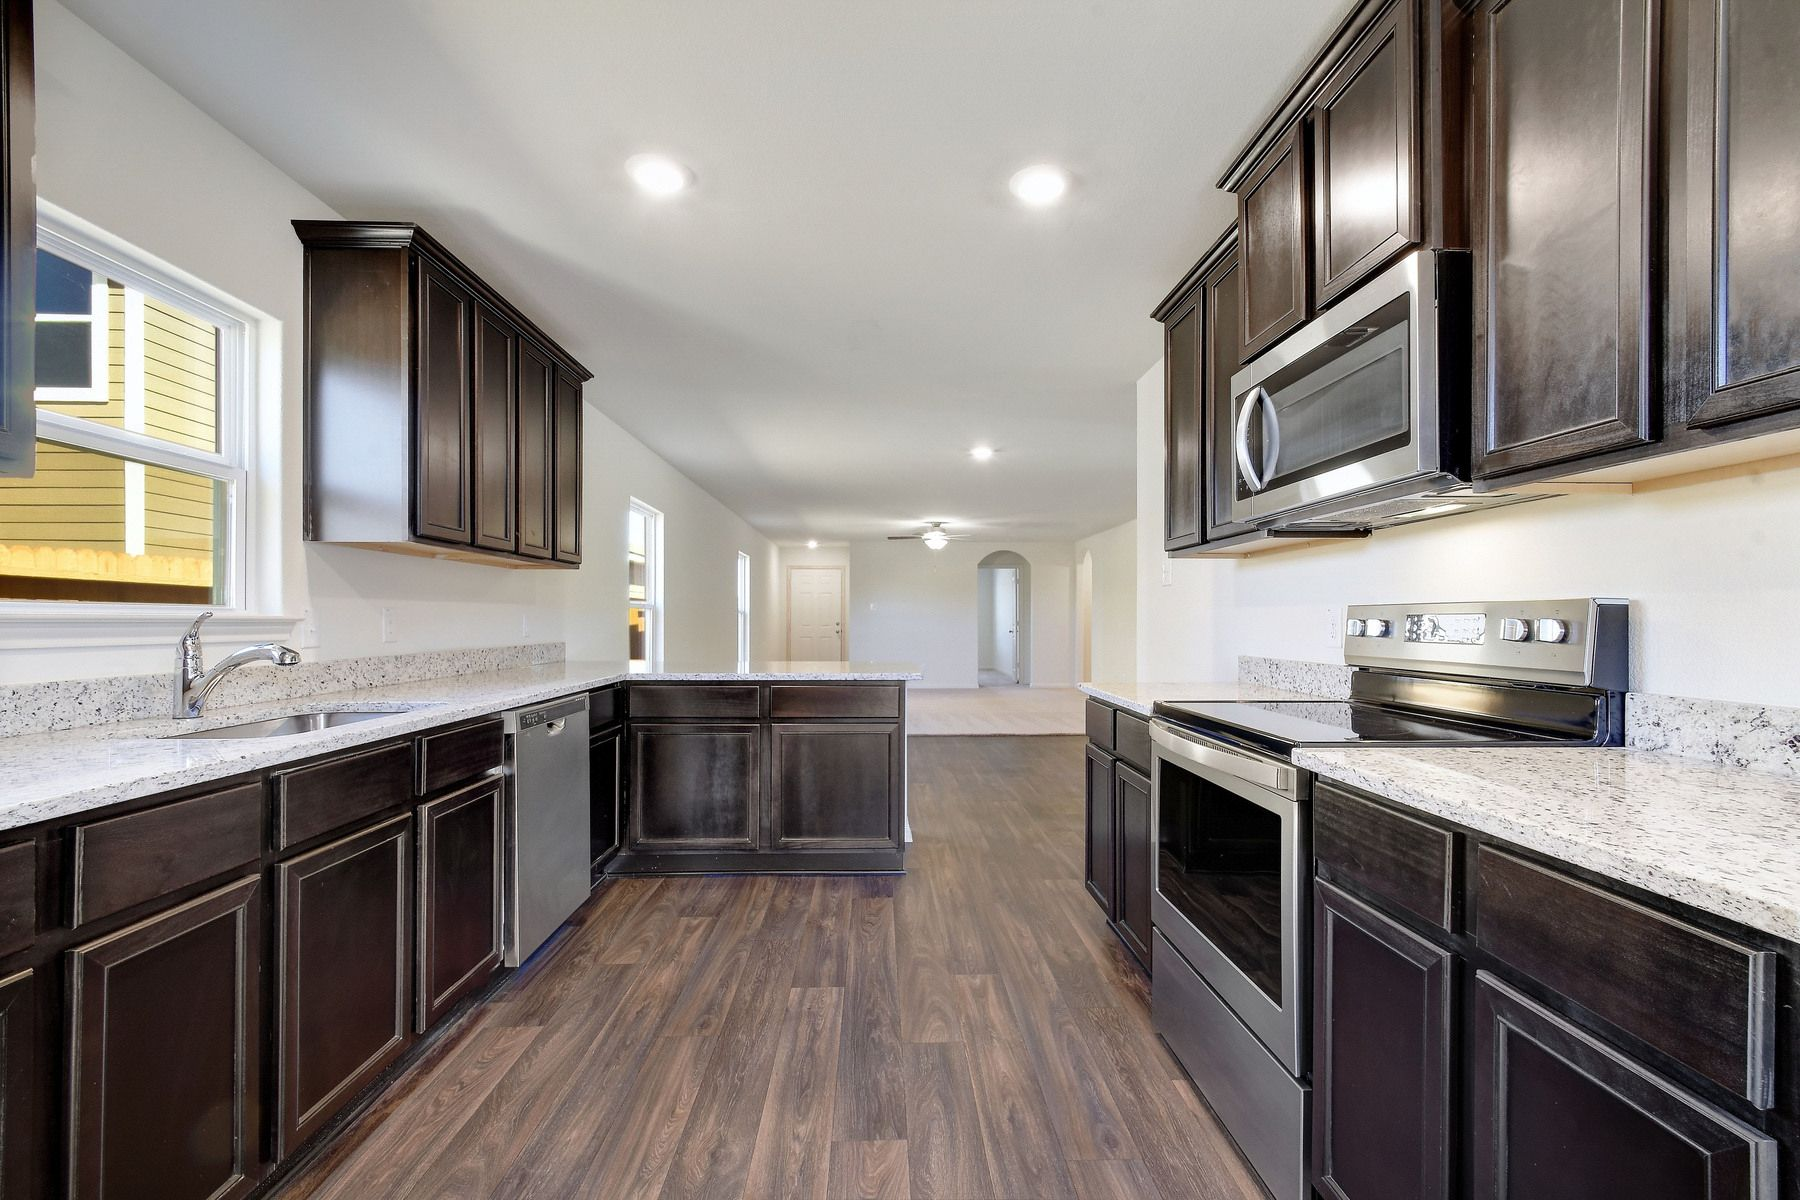 The Medina by LGI Homes:The kitchen comes with a full suite of energy-efficient appliances!